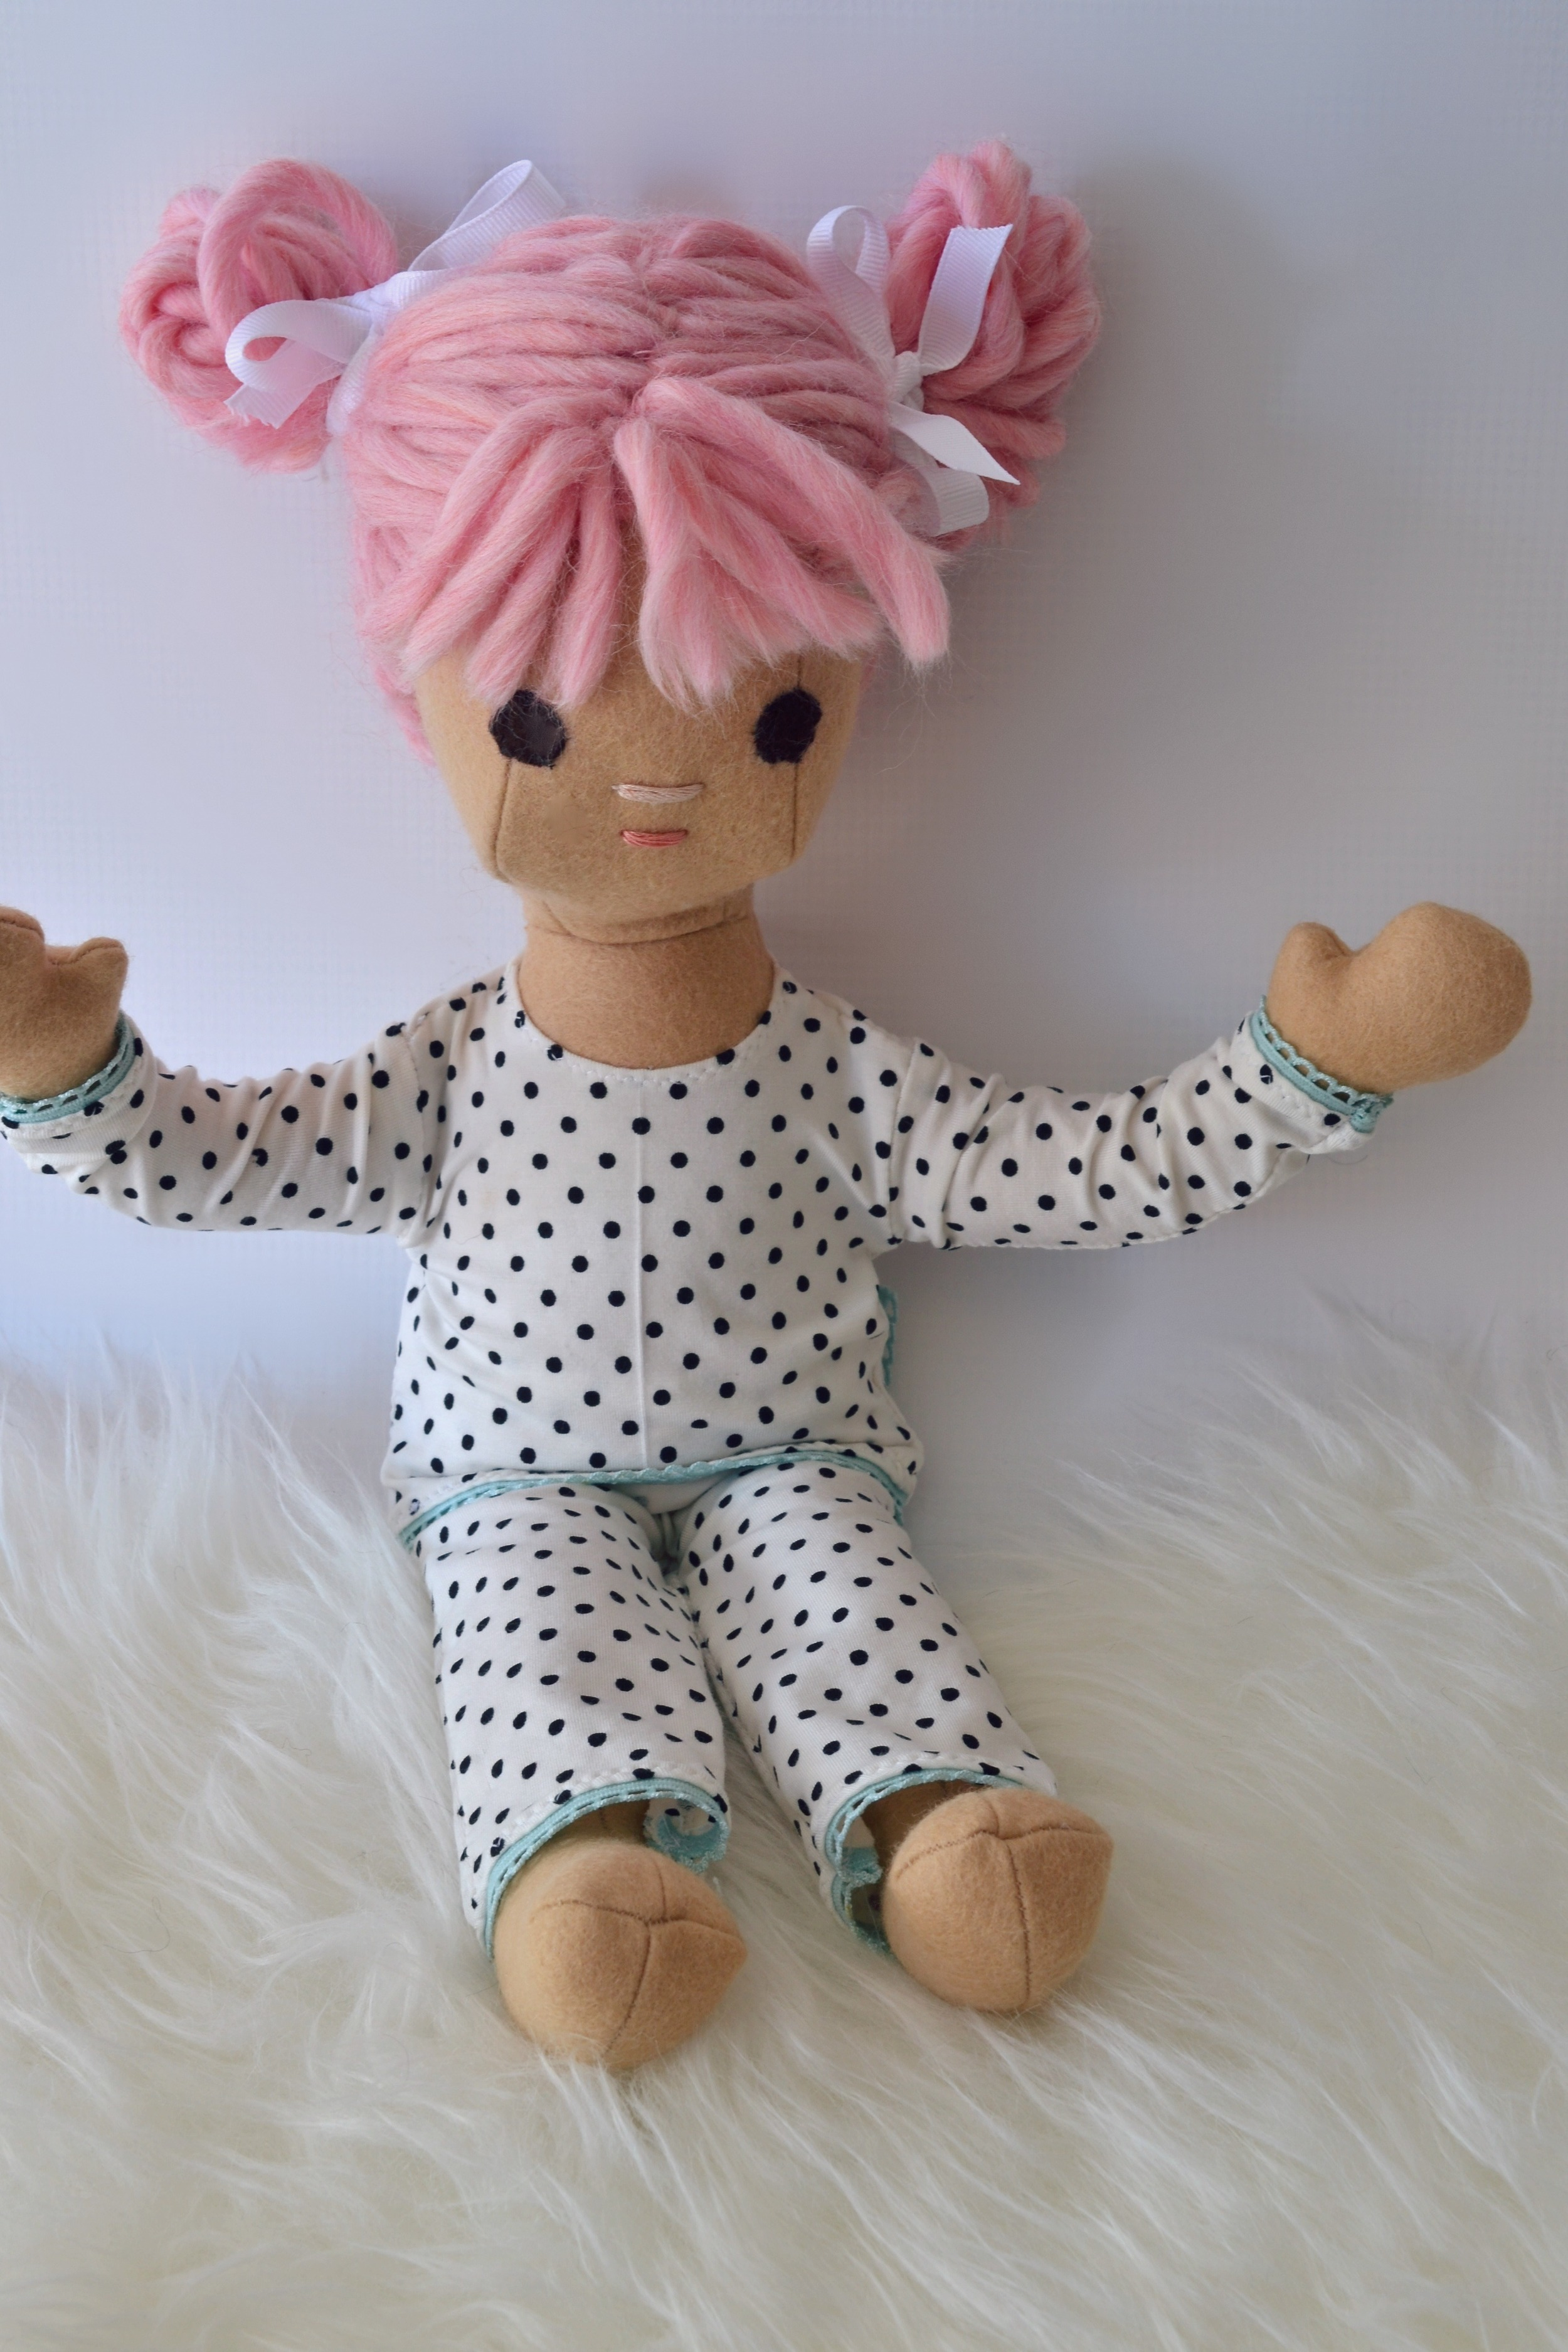 She loves her new PJs out of soft bamboo knit.